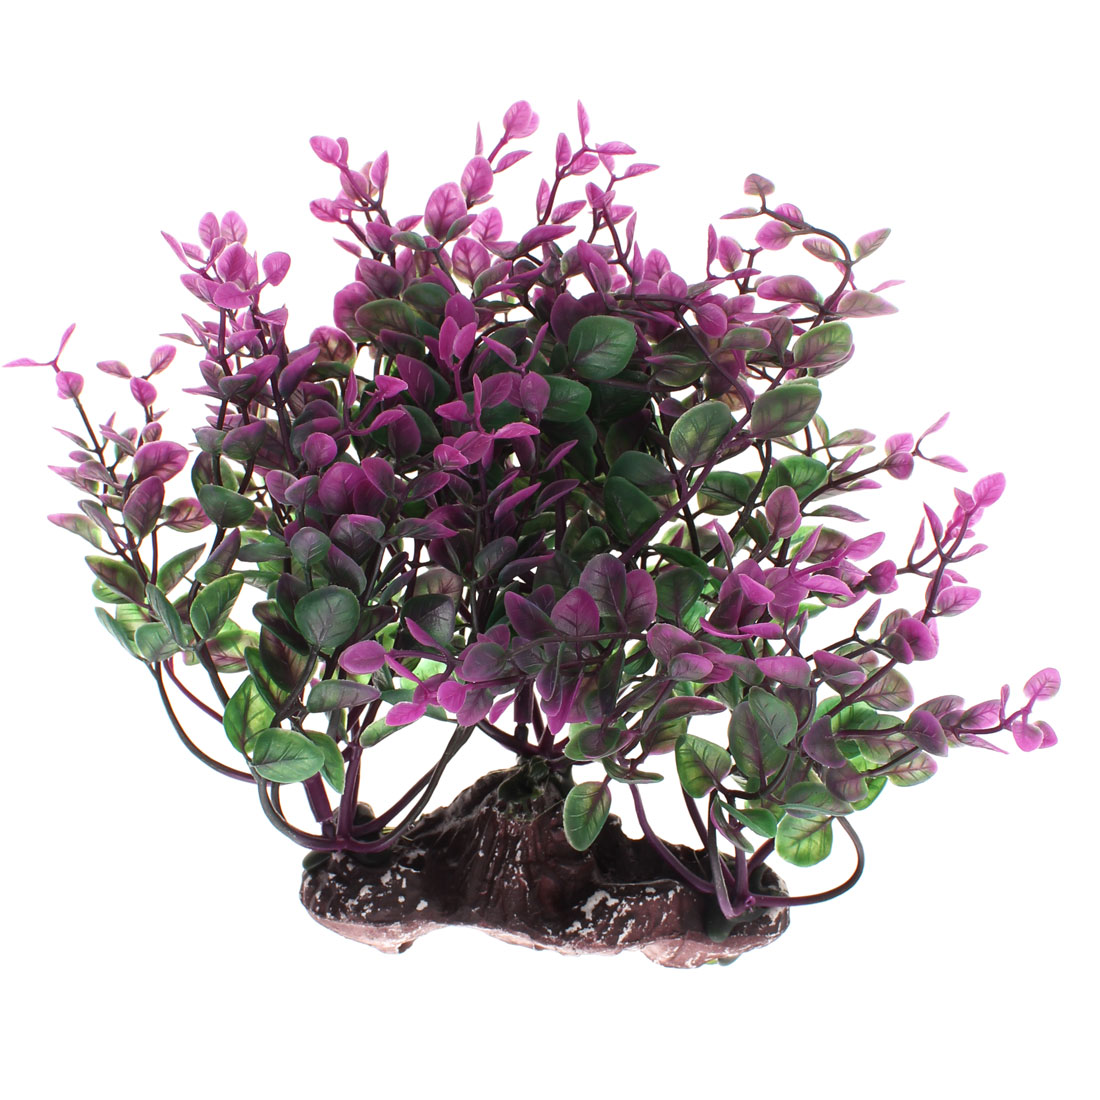 "Aquarium Plastic Artificial Underwater Plant Landscape Grass Decor 7.5"" Height"